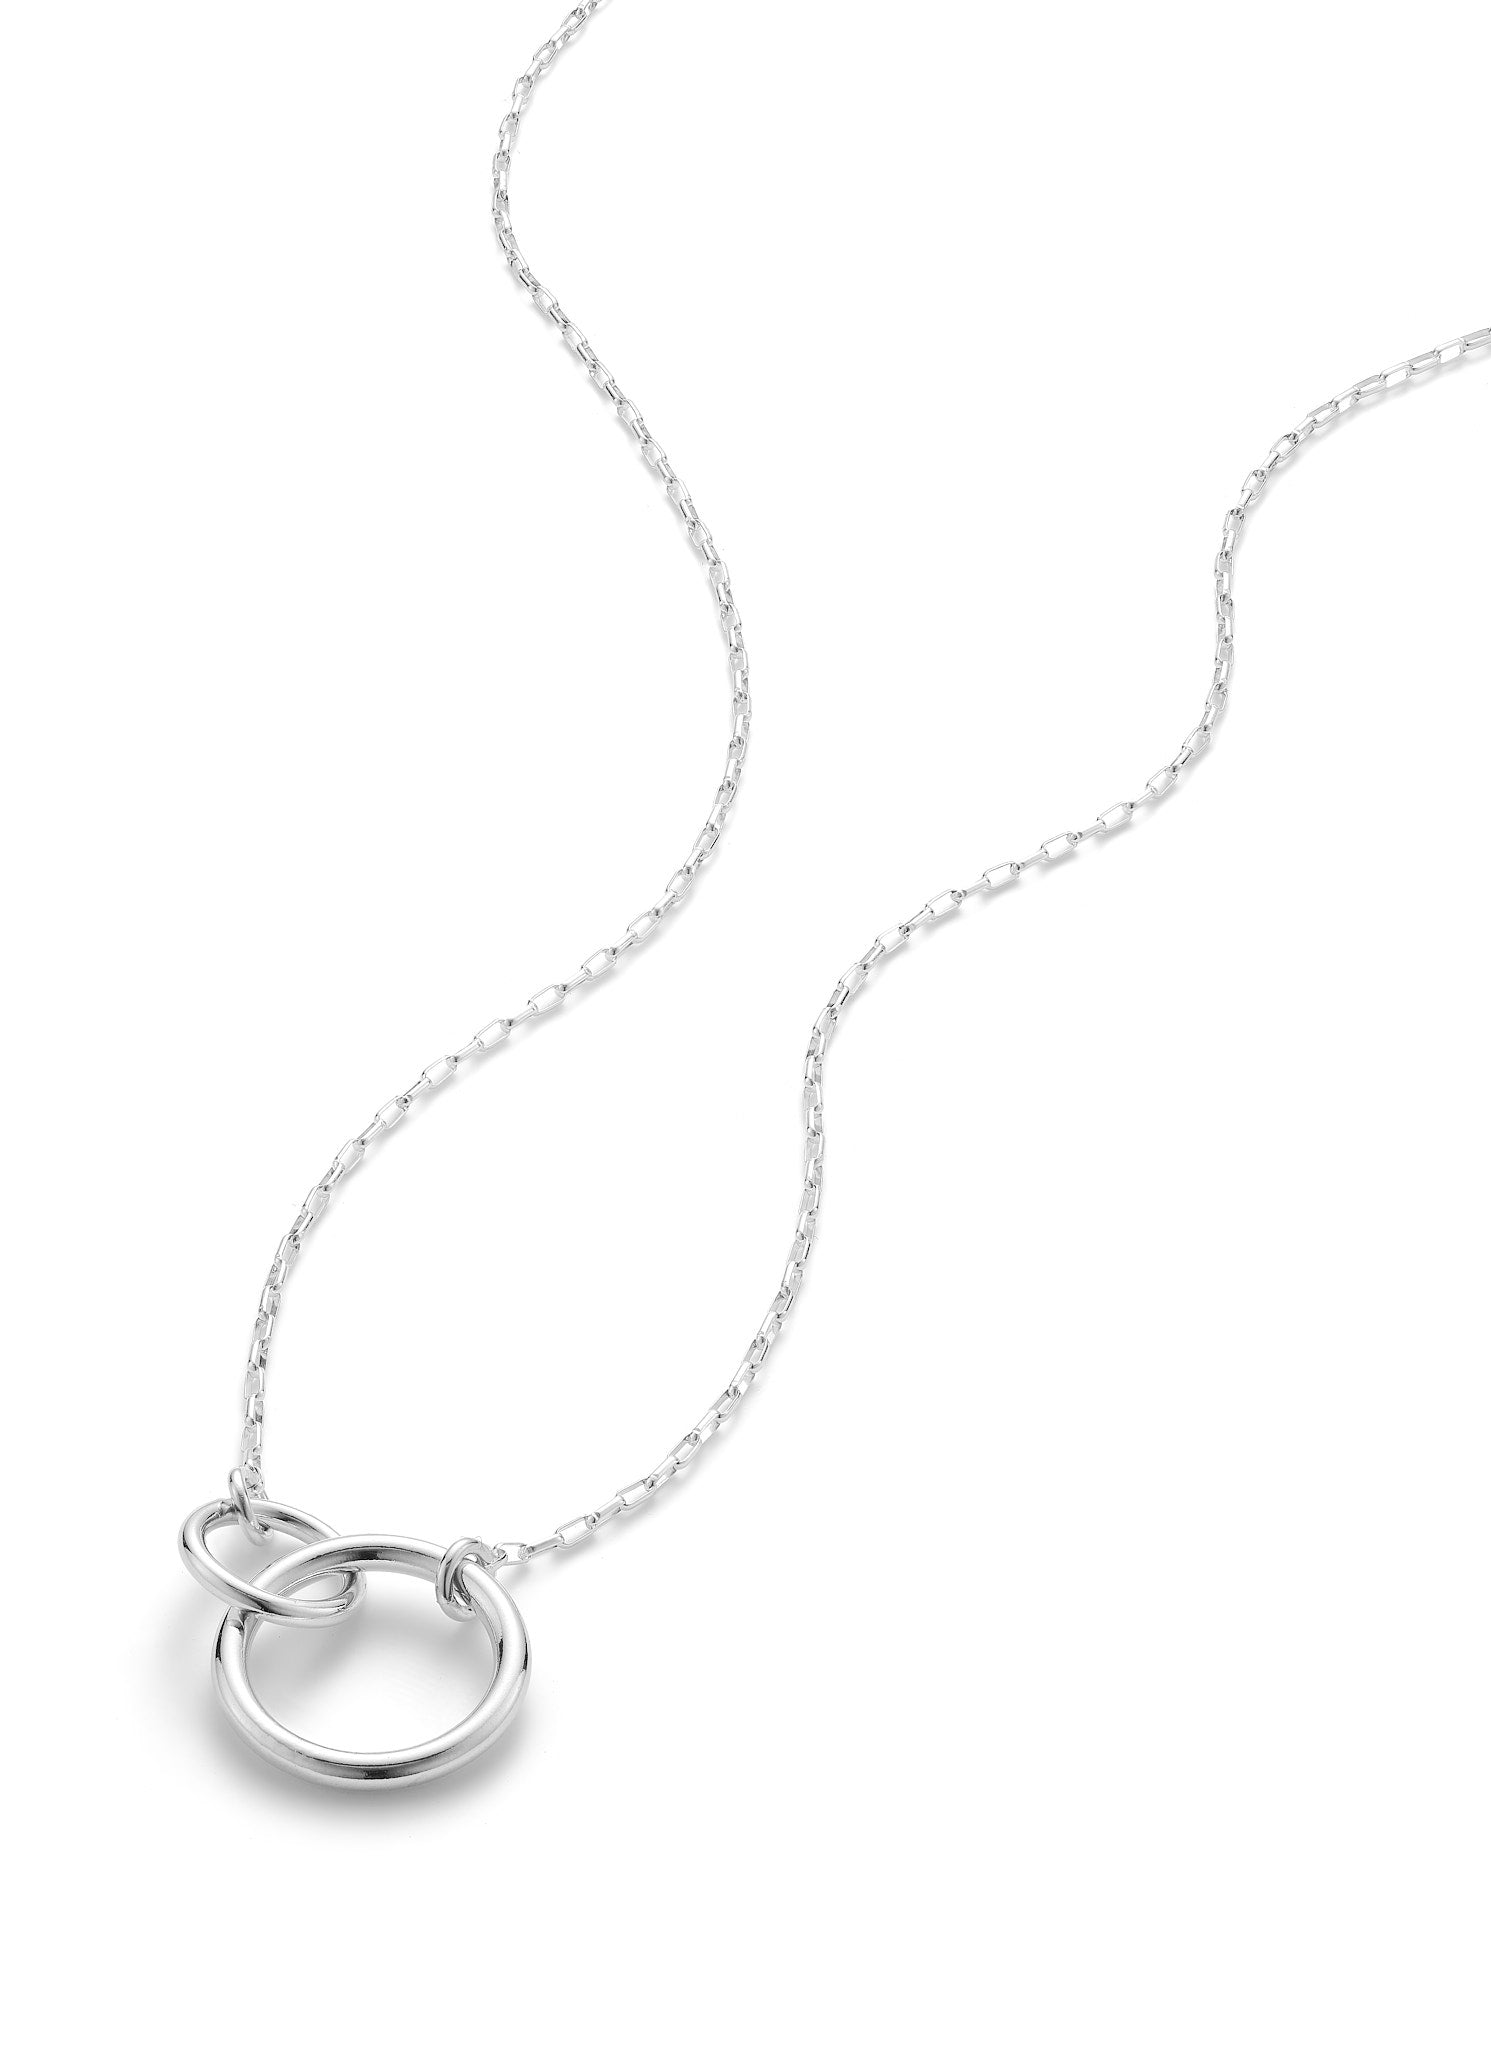 Besties Necklace - Silver